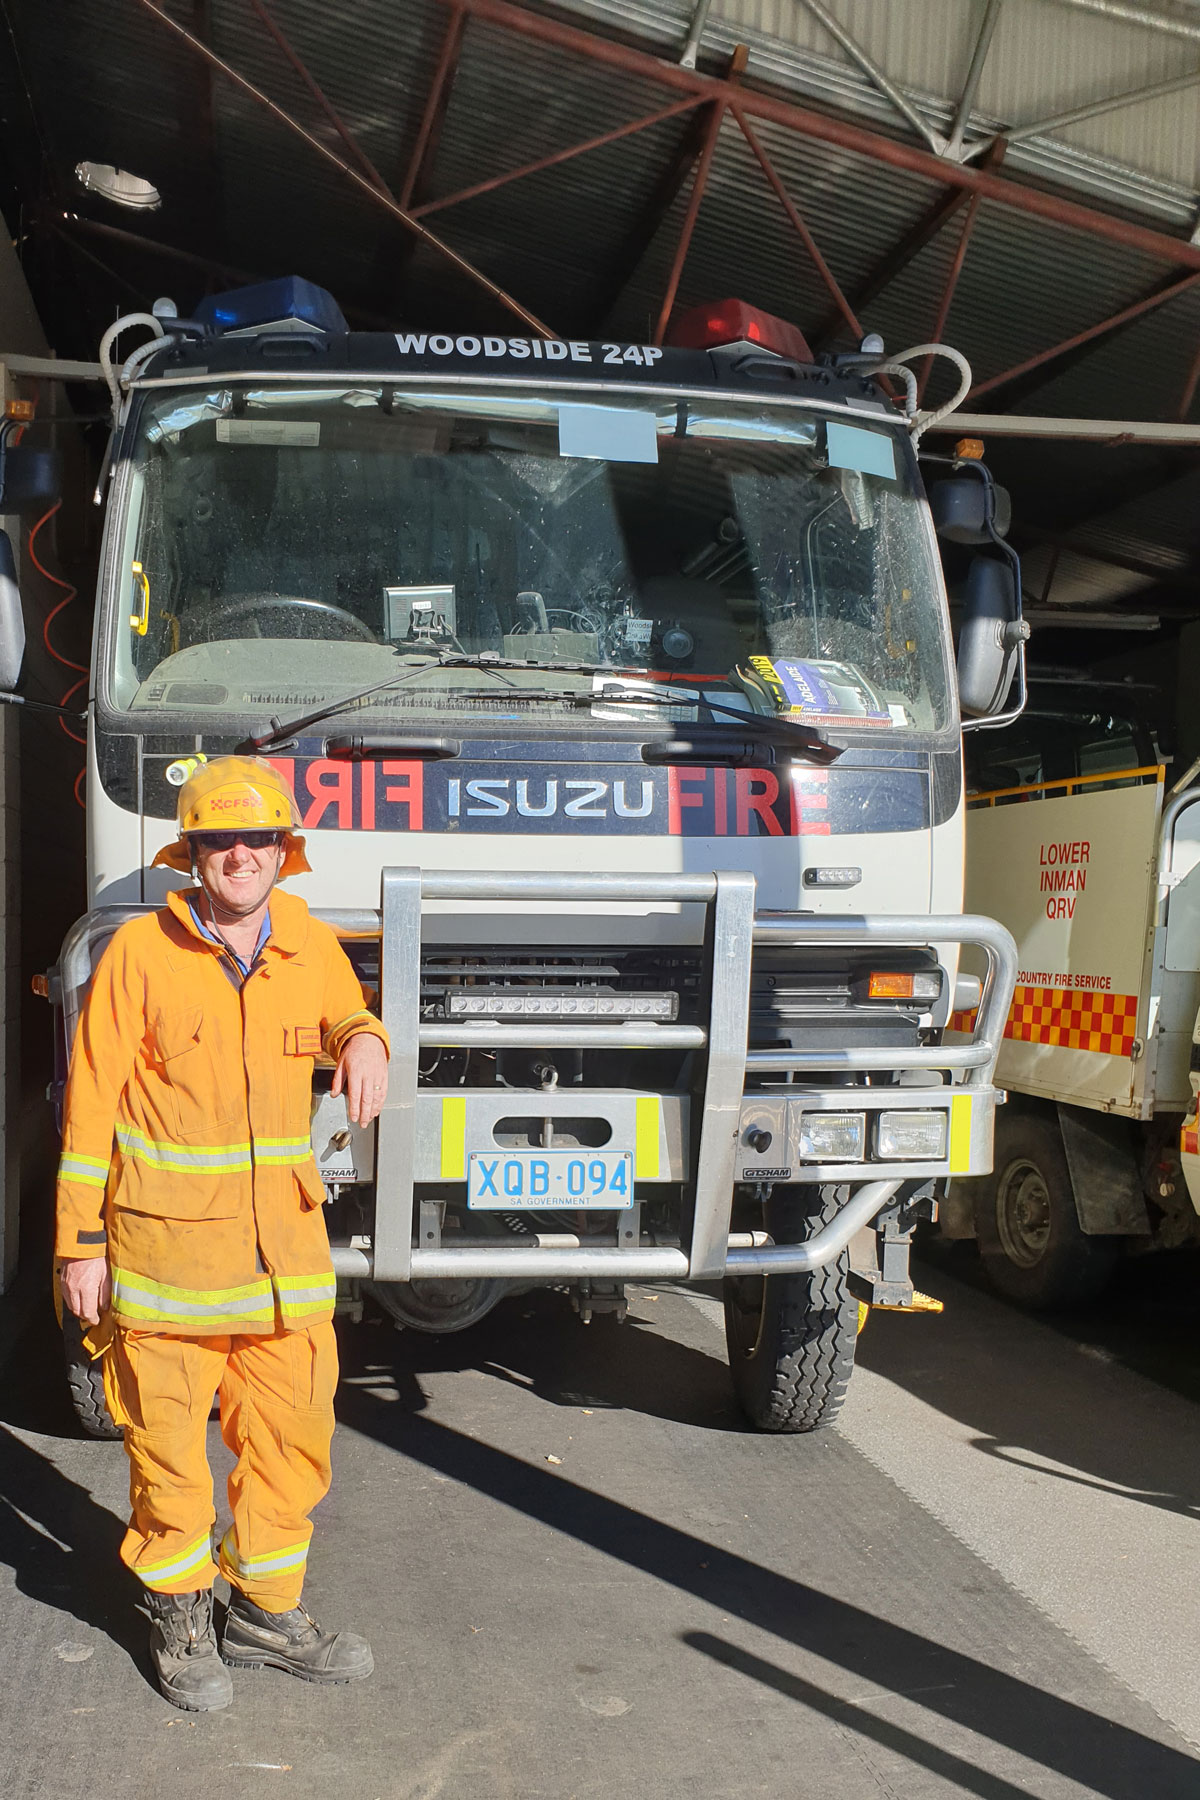 Woodside Lutheran chairperson and firefighting volunteer Darren Juers said it was great to see church and community members working together.